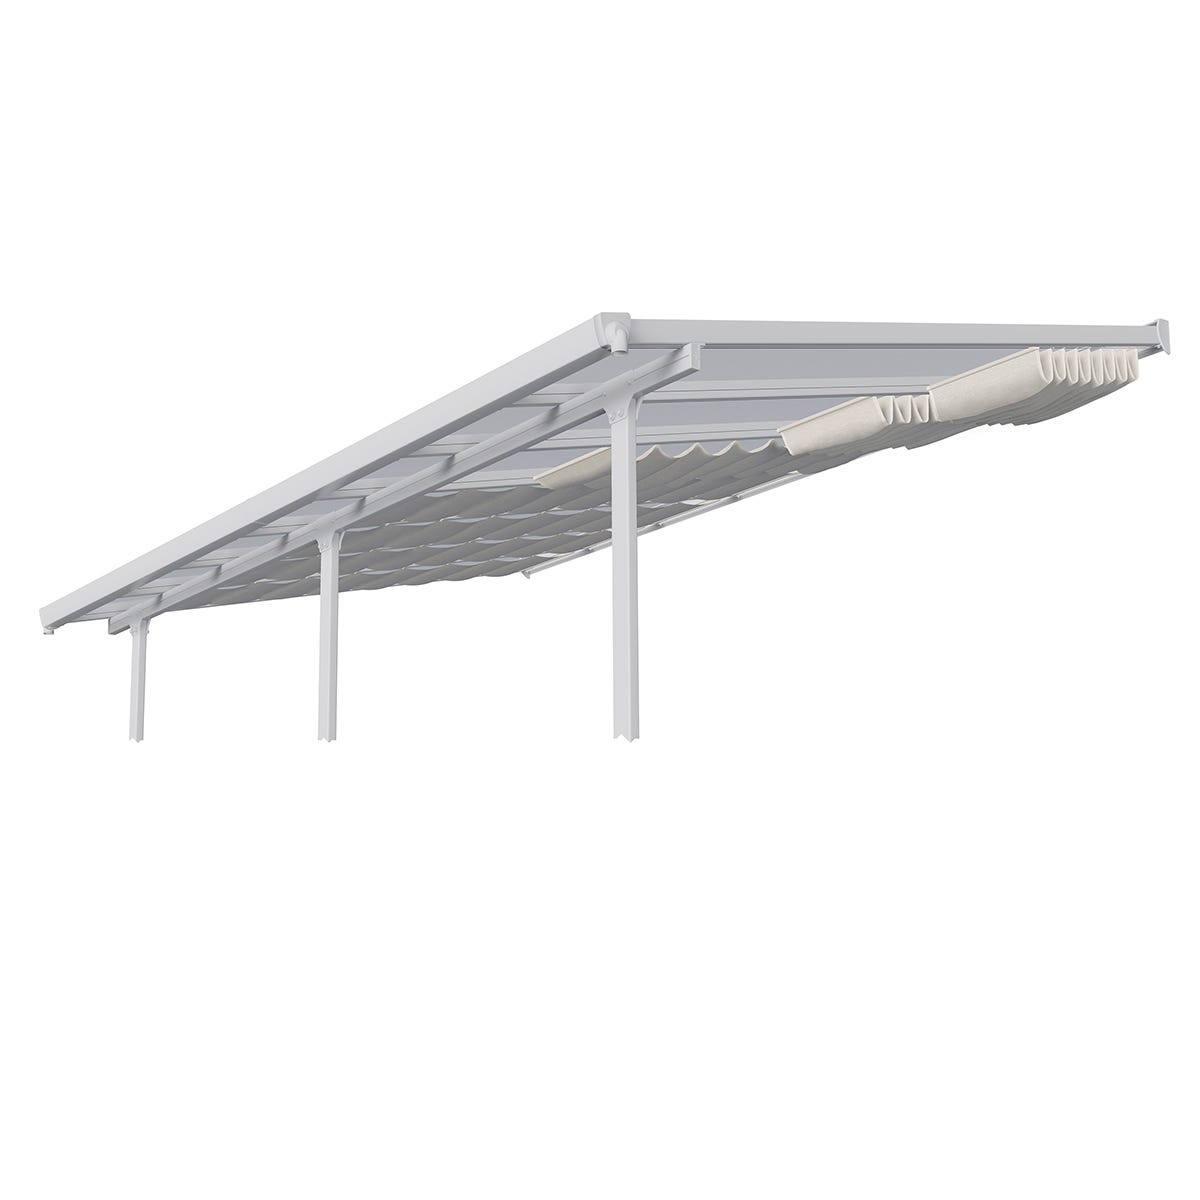 Palram - Canopia Patio Cover Roof Blinds 3m x 7.3m - White